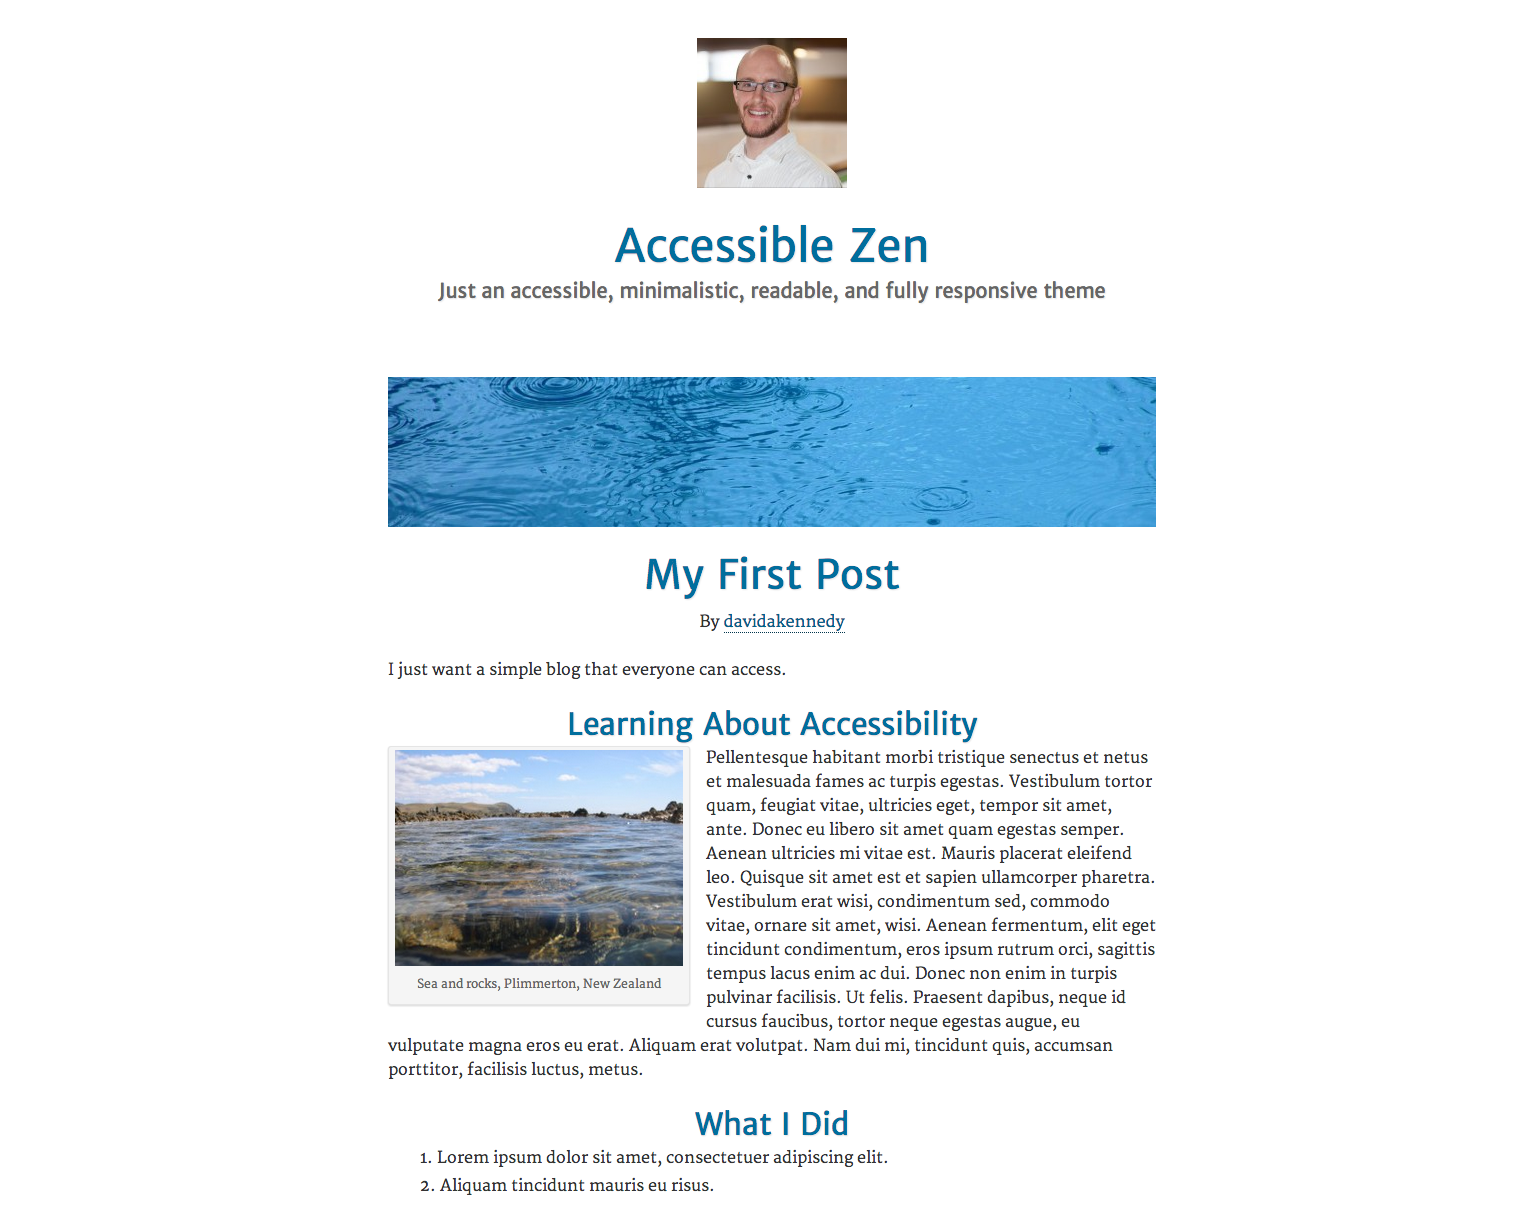 Accessible Zen demo.